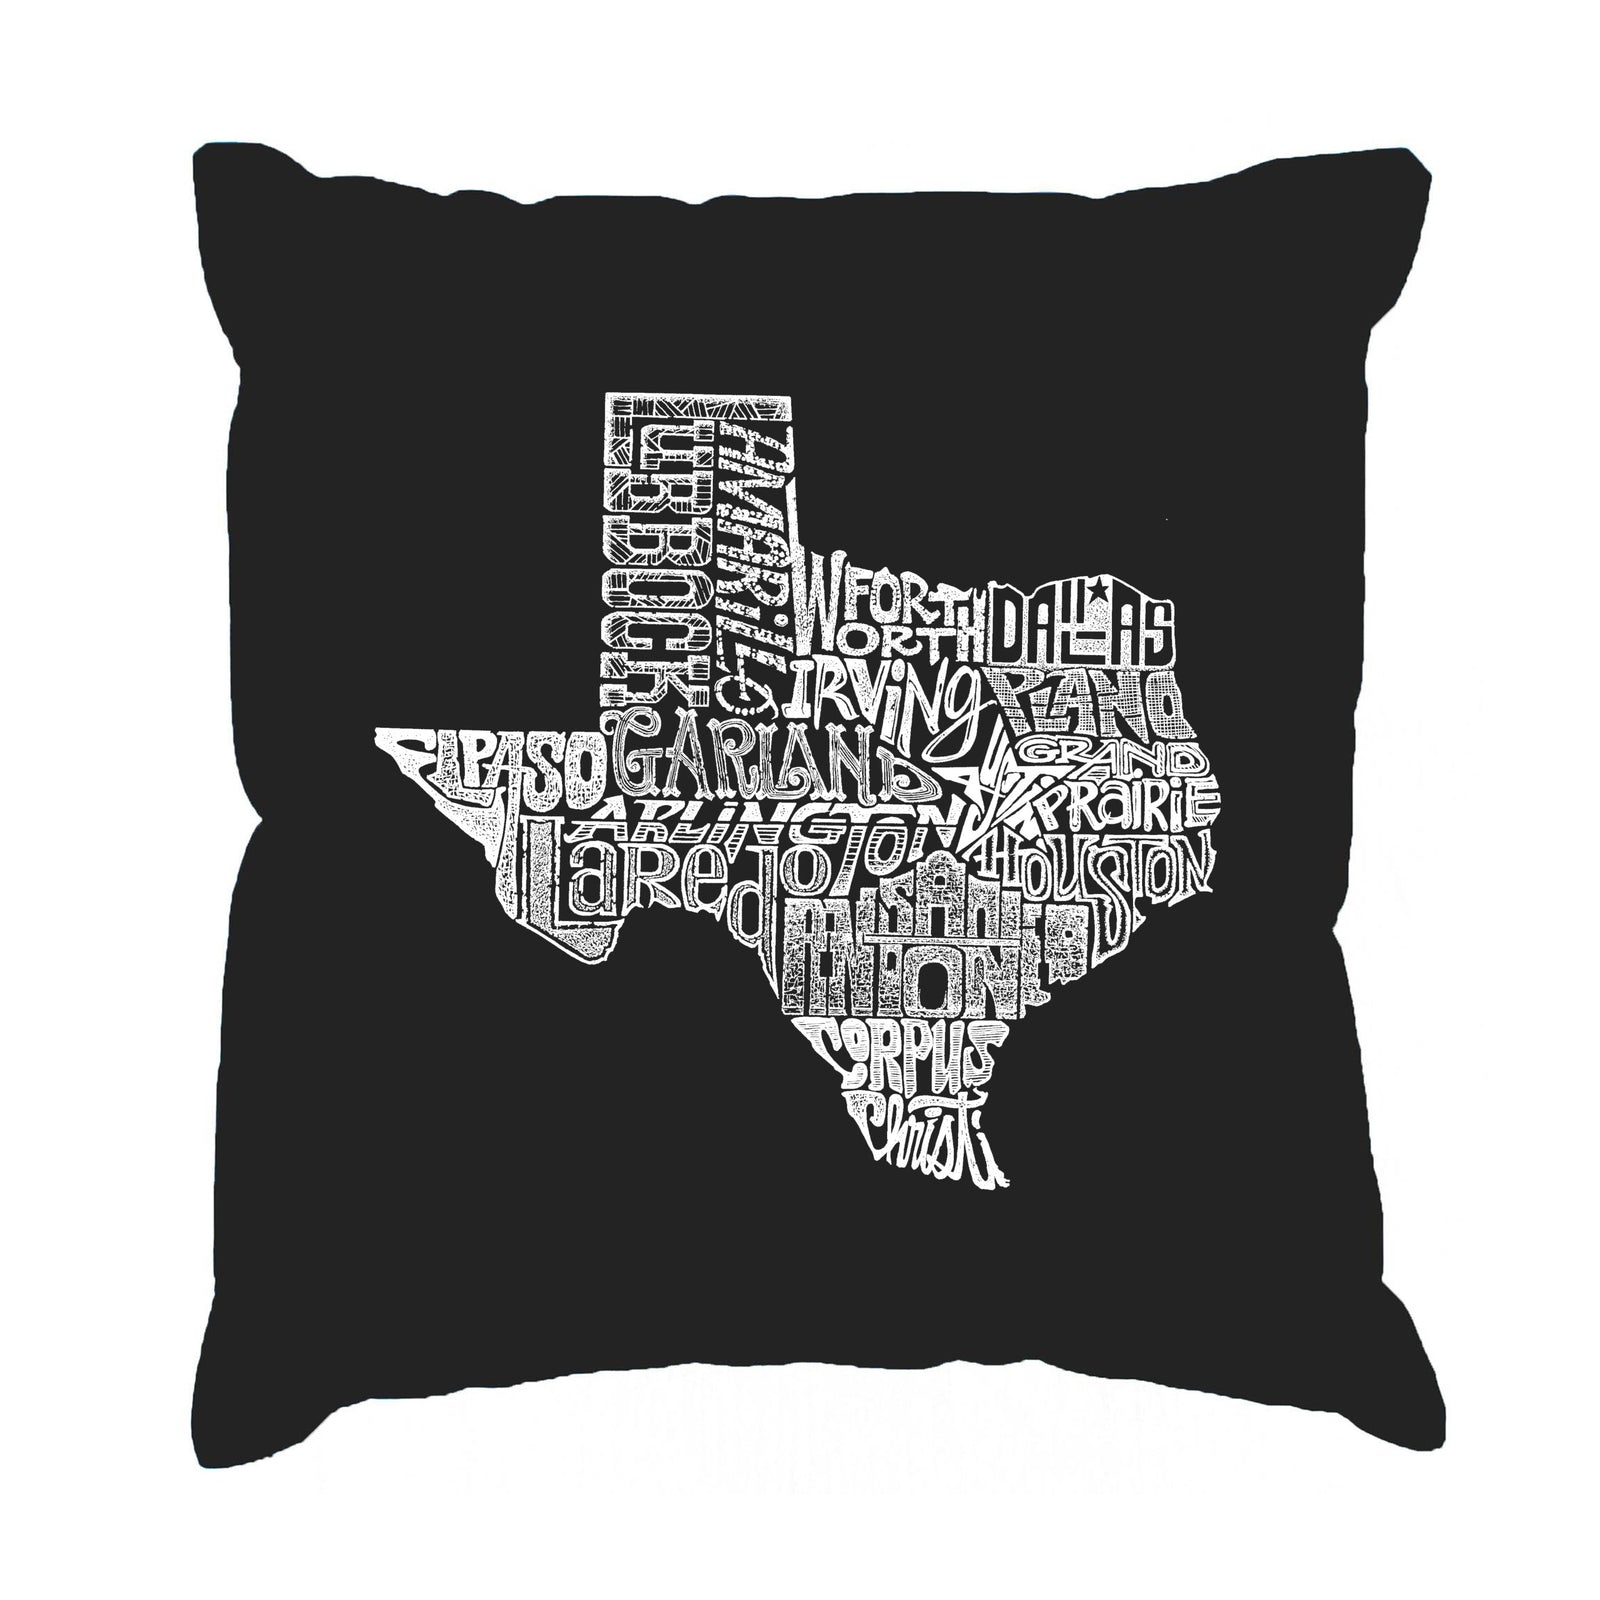 Throw Pillow Cover - The Great State of Texas